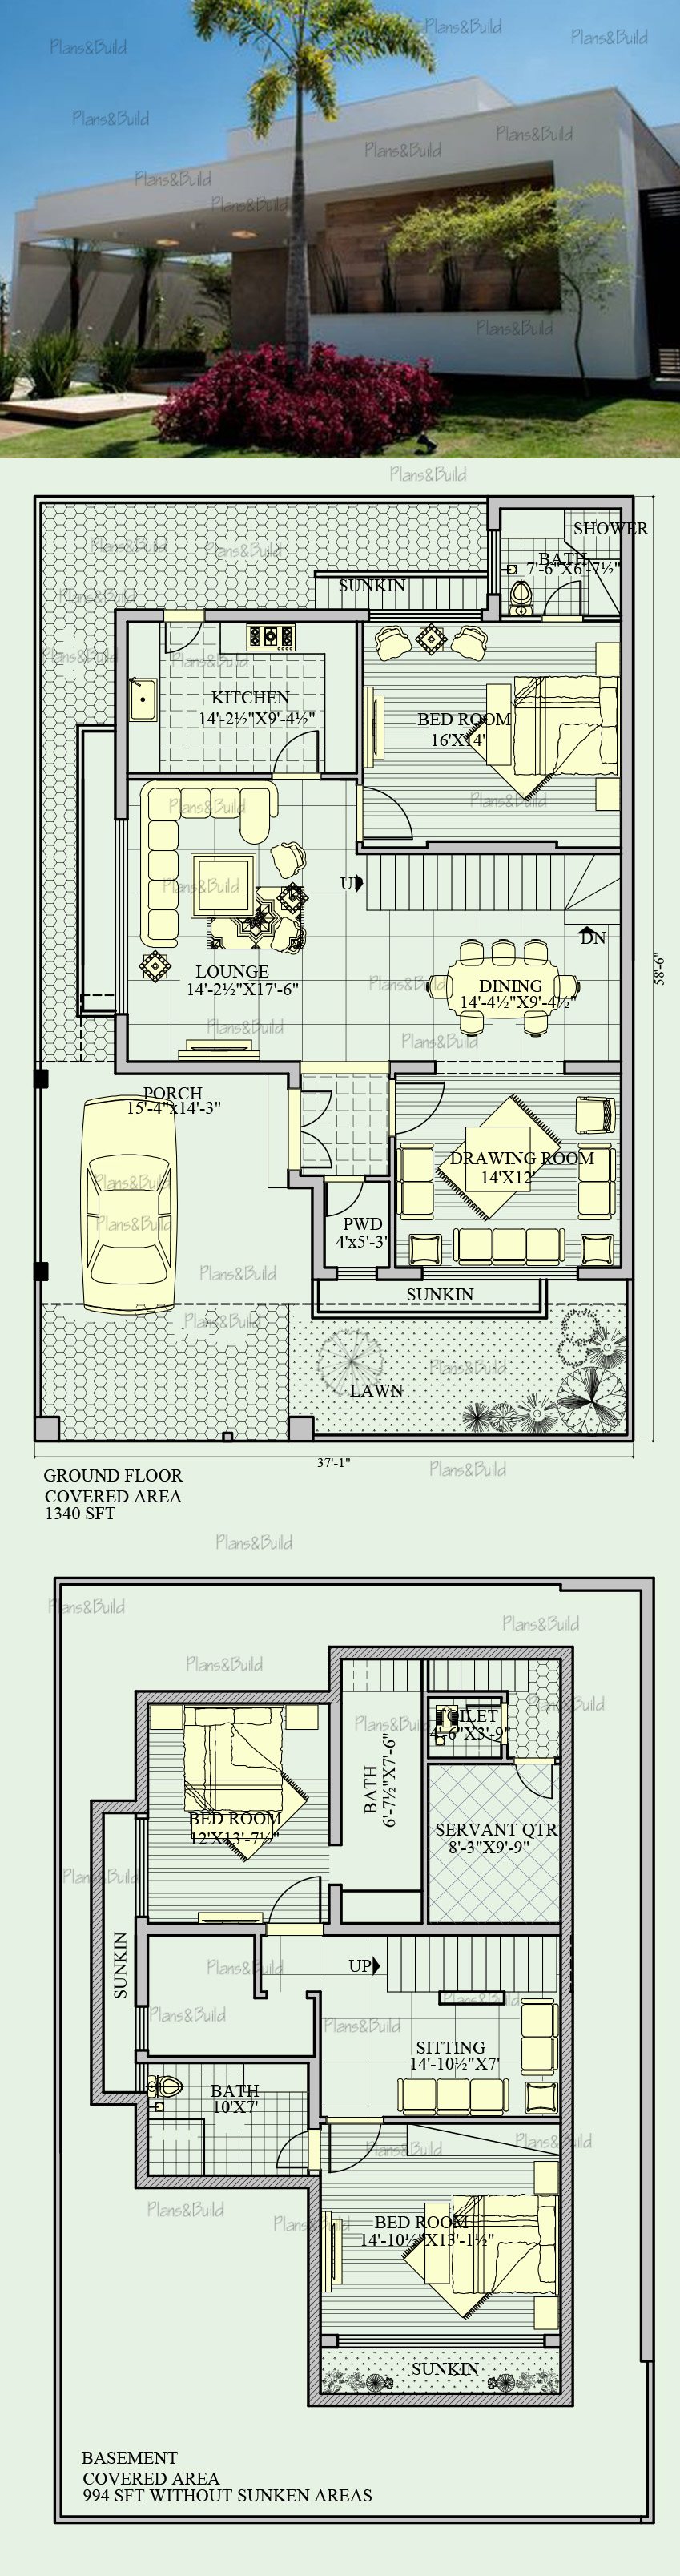 Plans and Build | 10 Marla house plan - 3 beds 4 bath 3100 Sq/Ft